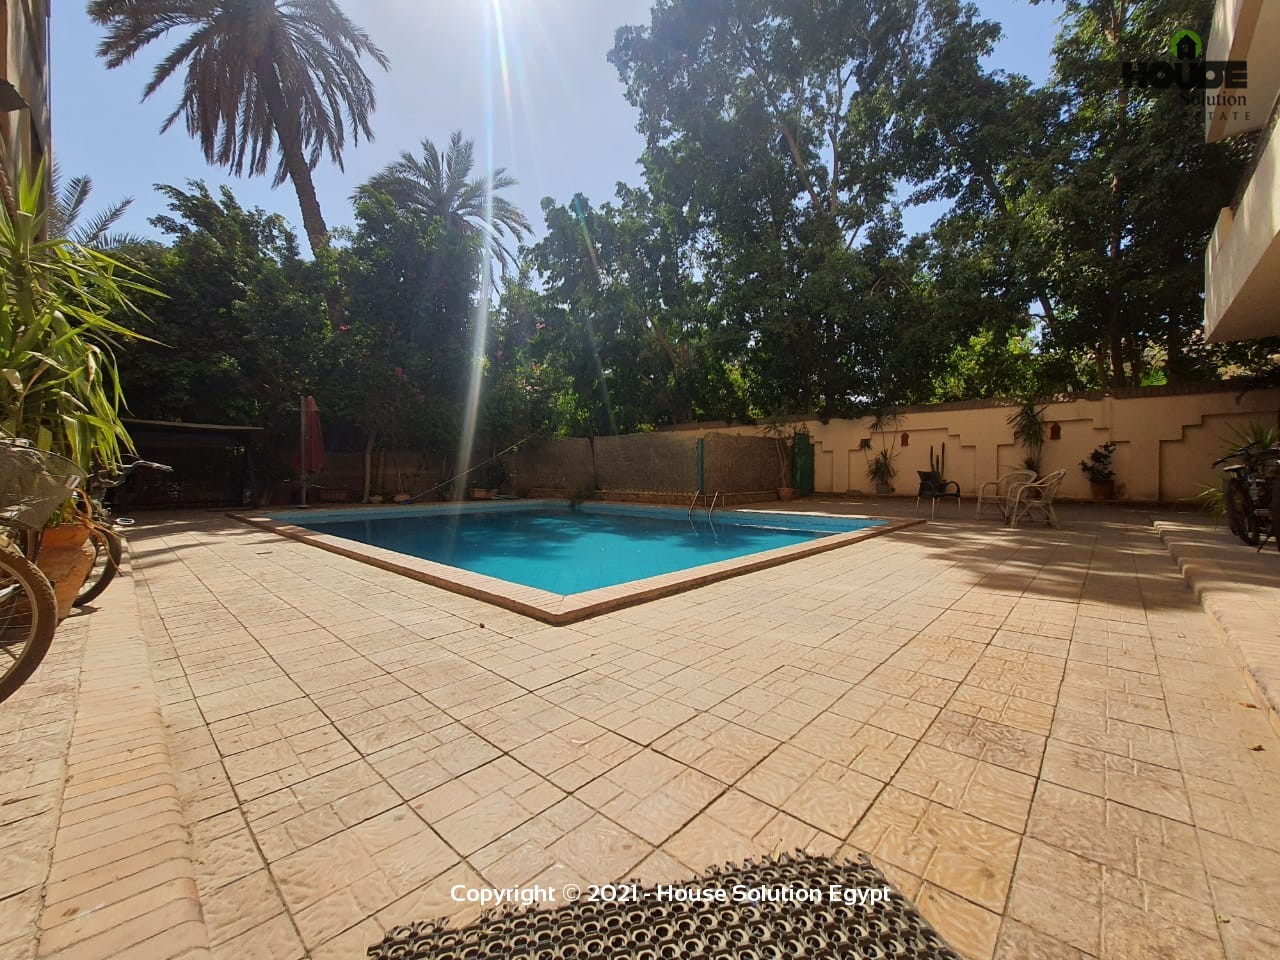 Outstanding Apartment For Rent With 2 Shared Swimming Pools In Sarayat El Maadi  - 4943 Featured Image